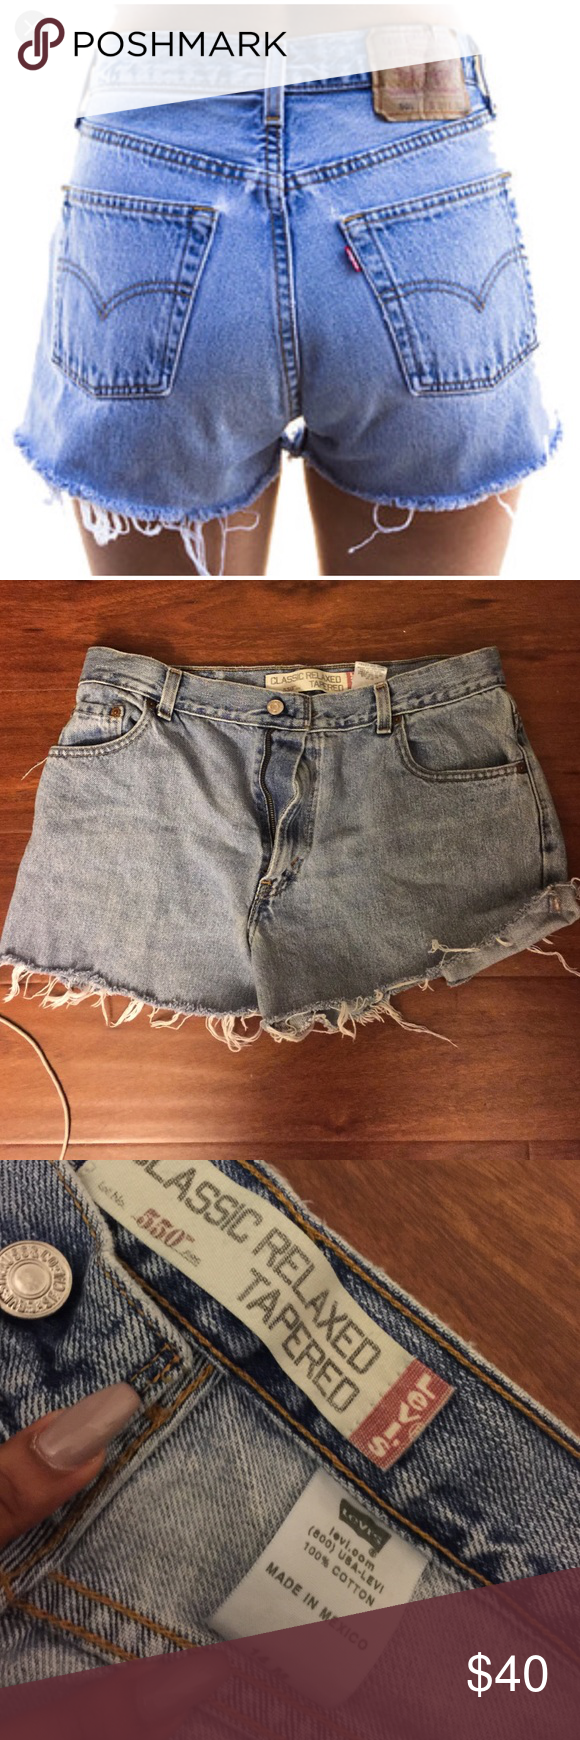 Vintage Levi Shorts Never worn by me. Measures 17 inches flat. NO TRADES Levi's Shorts Jean Shorts